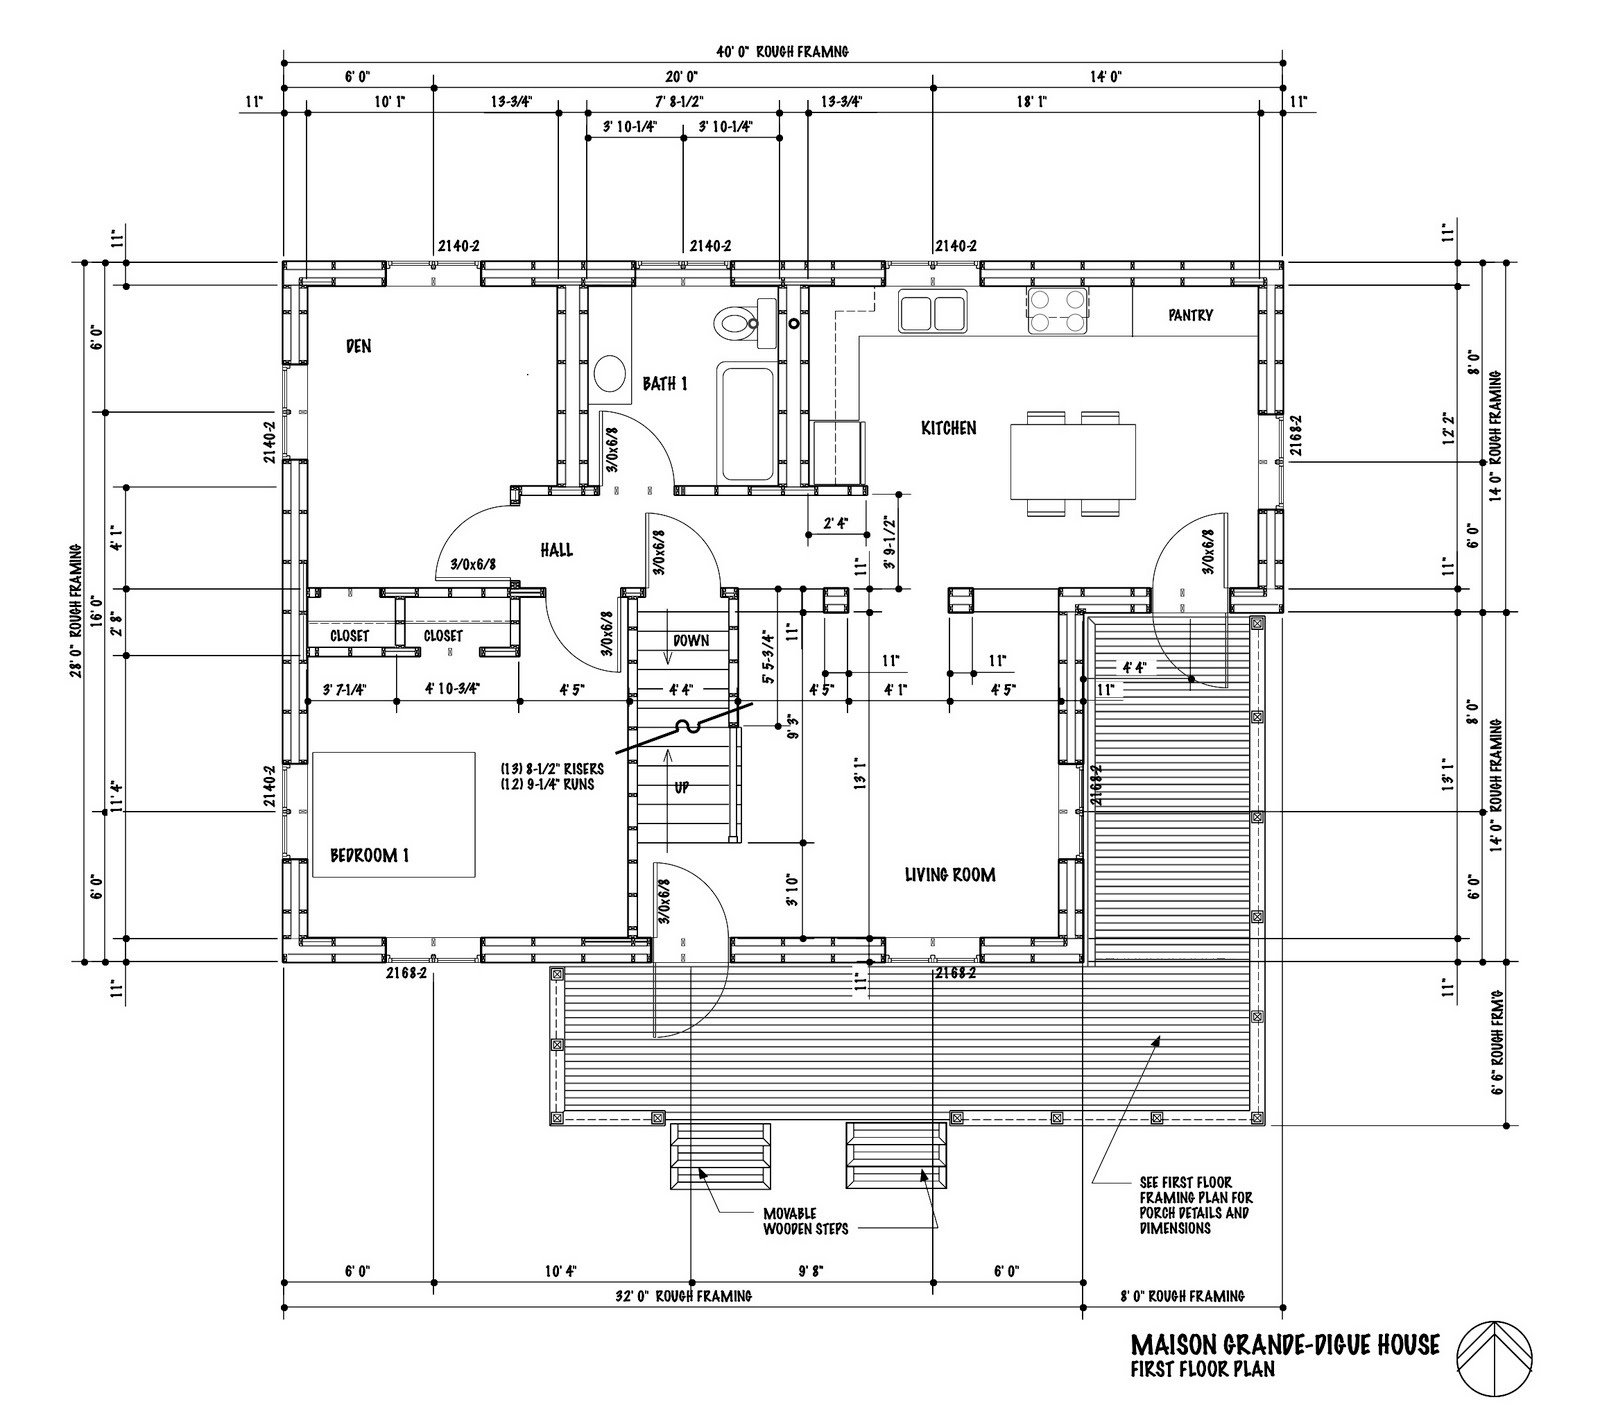 Kitchen Floor Plan With Dimensions house floor plan with dimensions